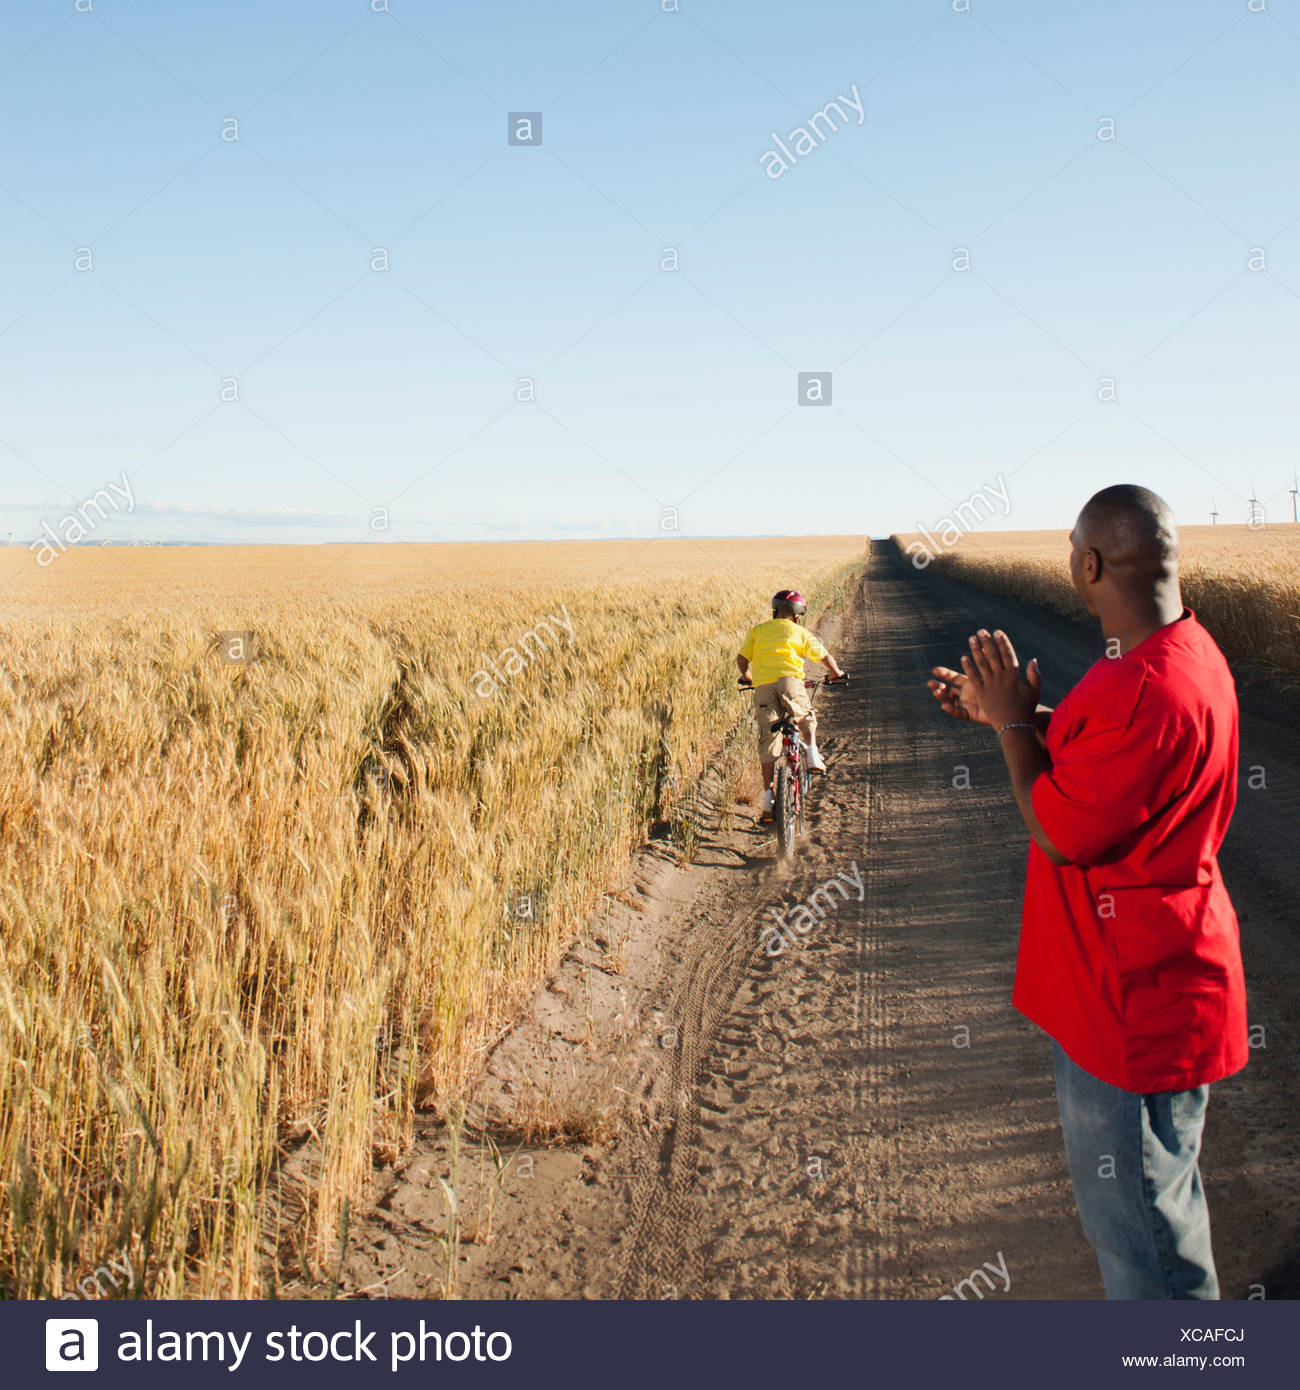 USA, Oregon, Wasco, Father clapping as son is cycling along dirt road in fields - Stock Image